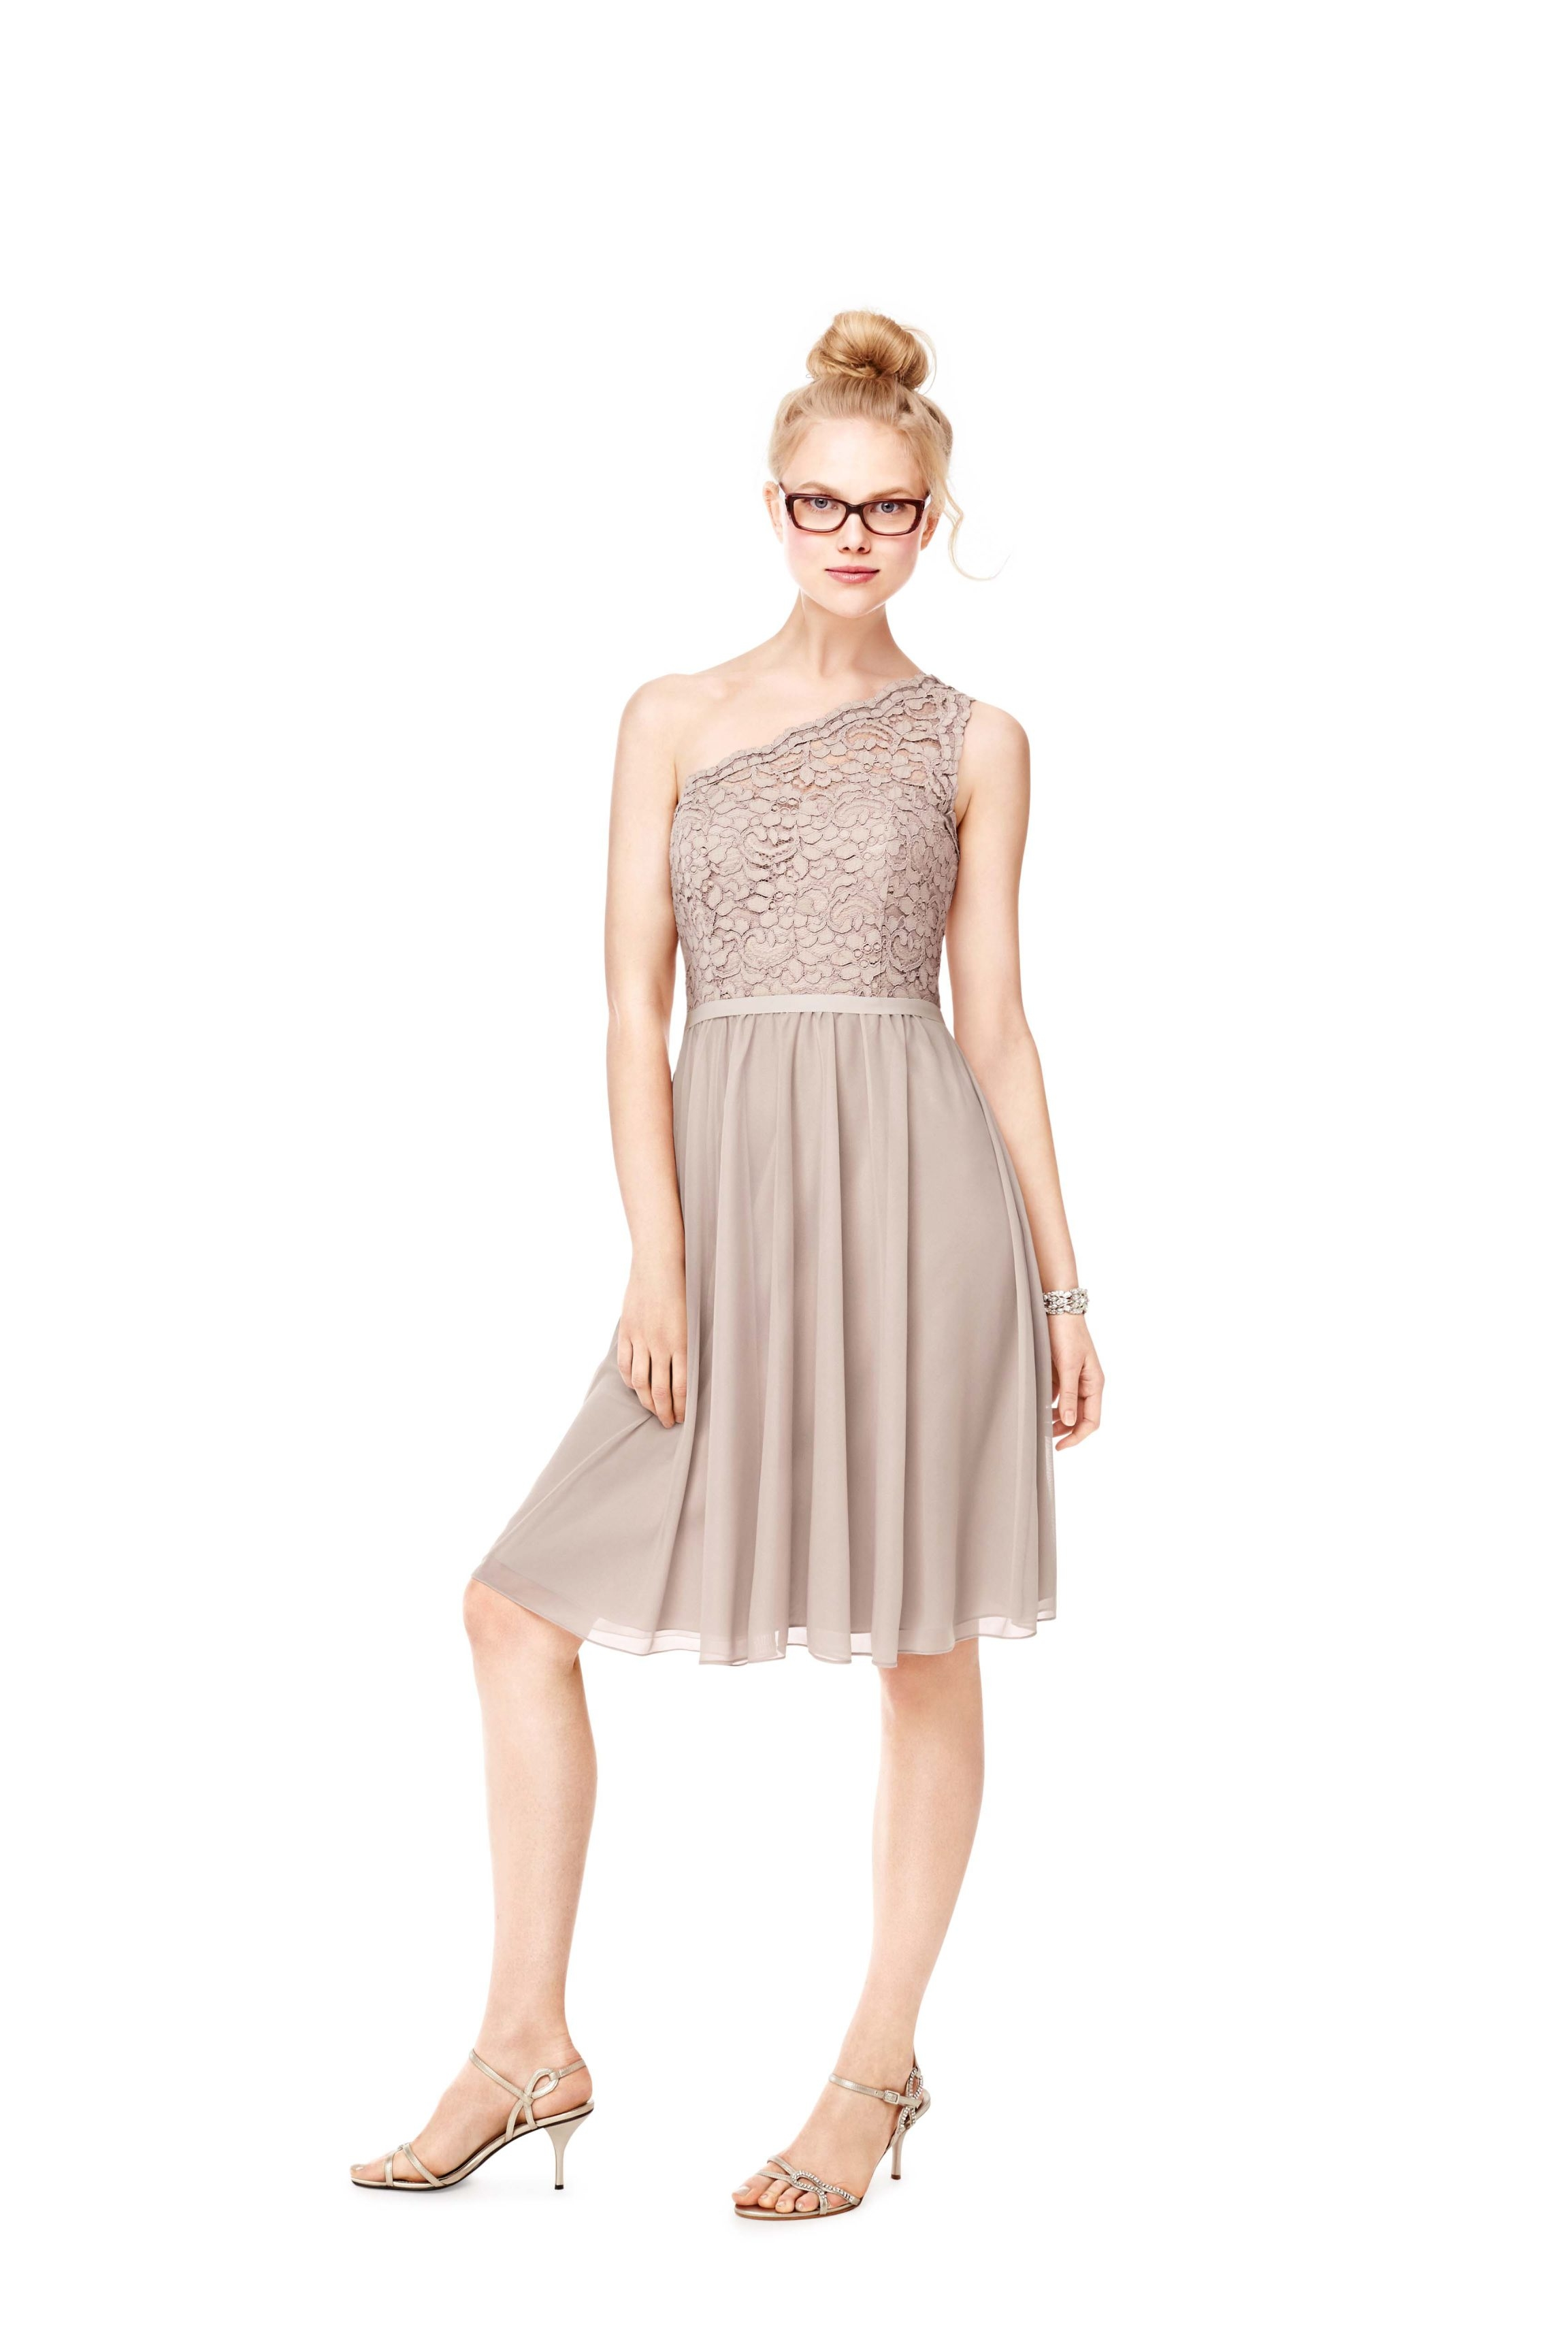 On trend: David's Bridal offers of-the-moment lace and other dress styles for bridesmaids.